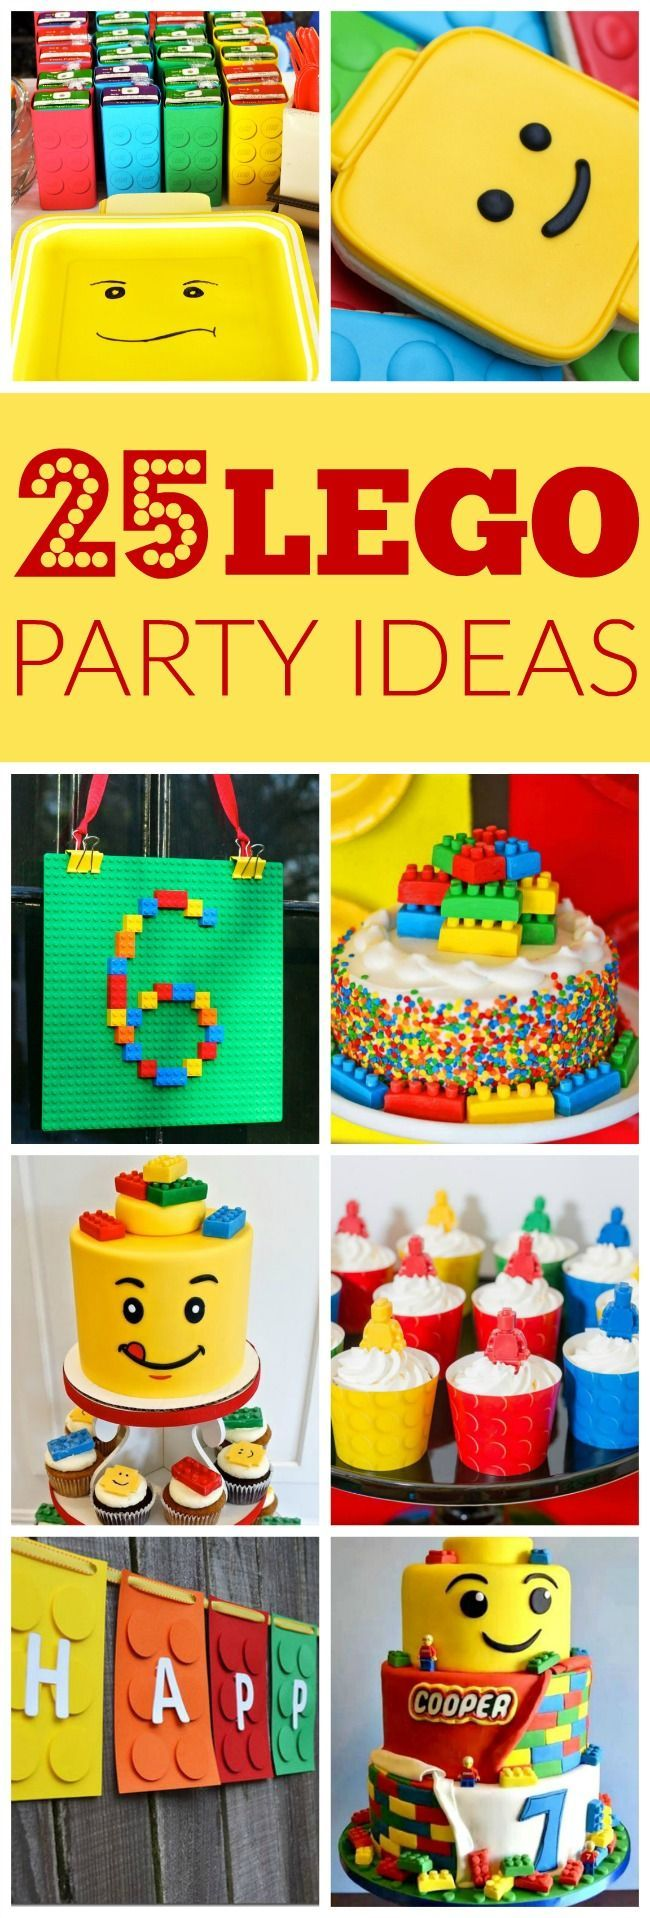 lego-birthday-party-ideas.jpg (650×1918)